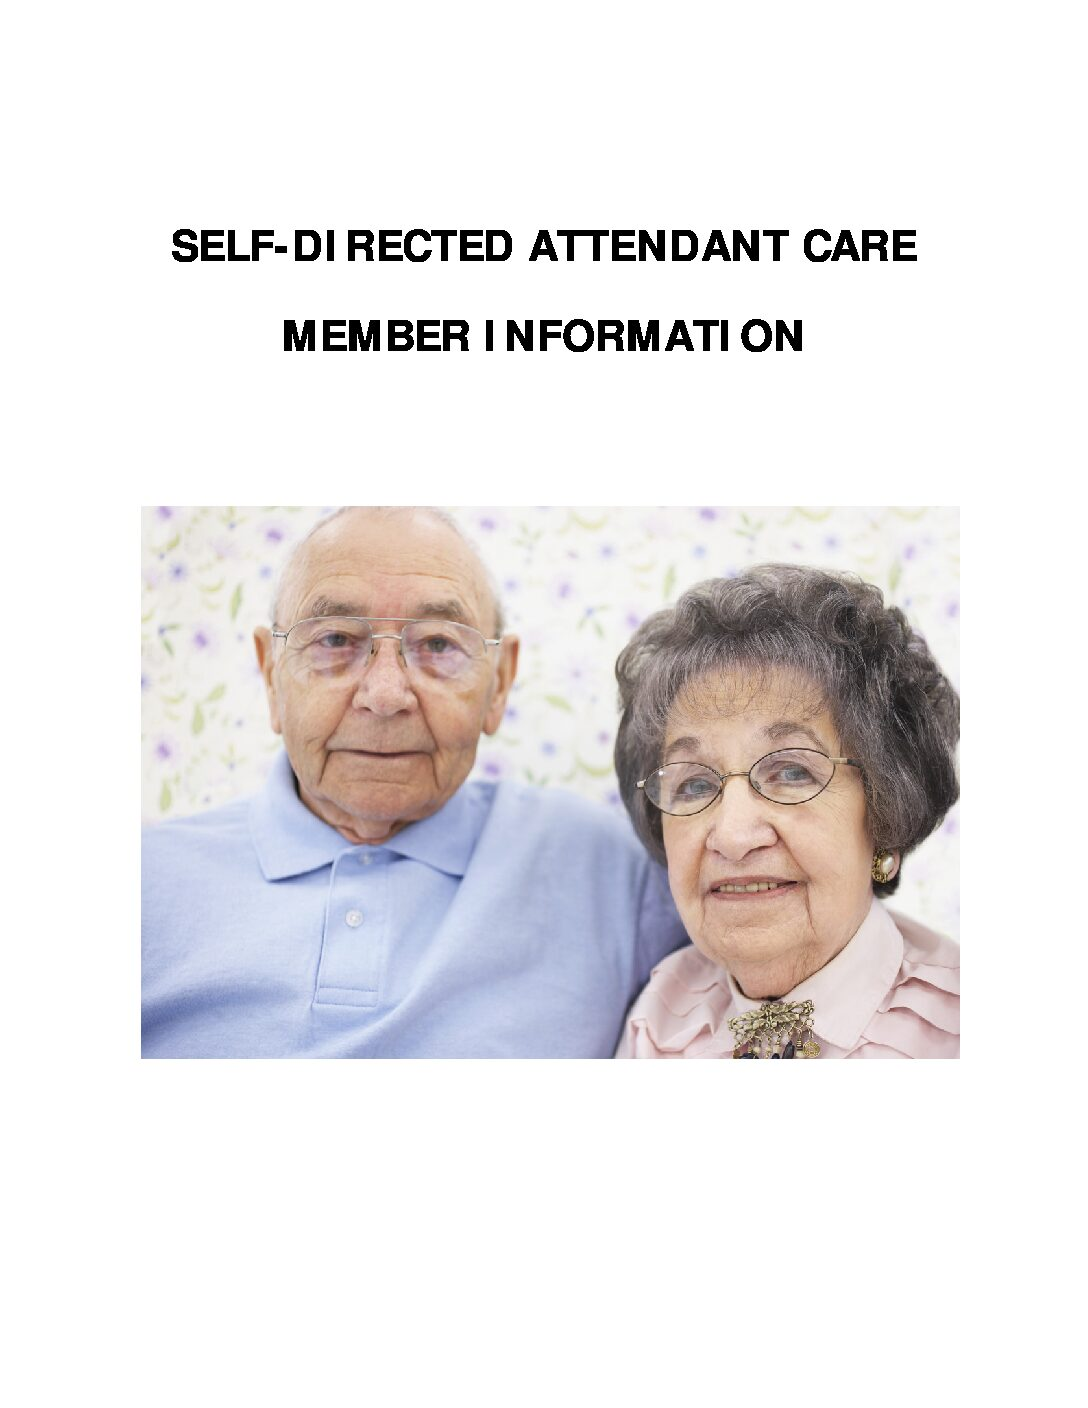 SELF-DIRECTED ATTENDANT CARE MEMBER INFORMATION